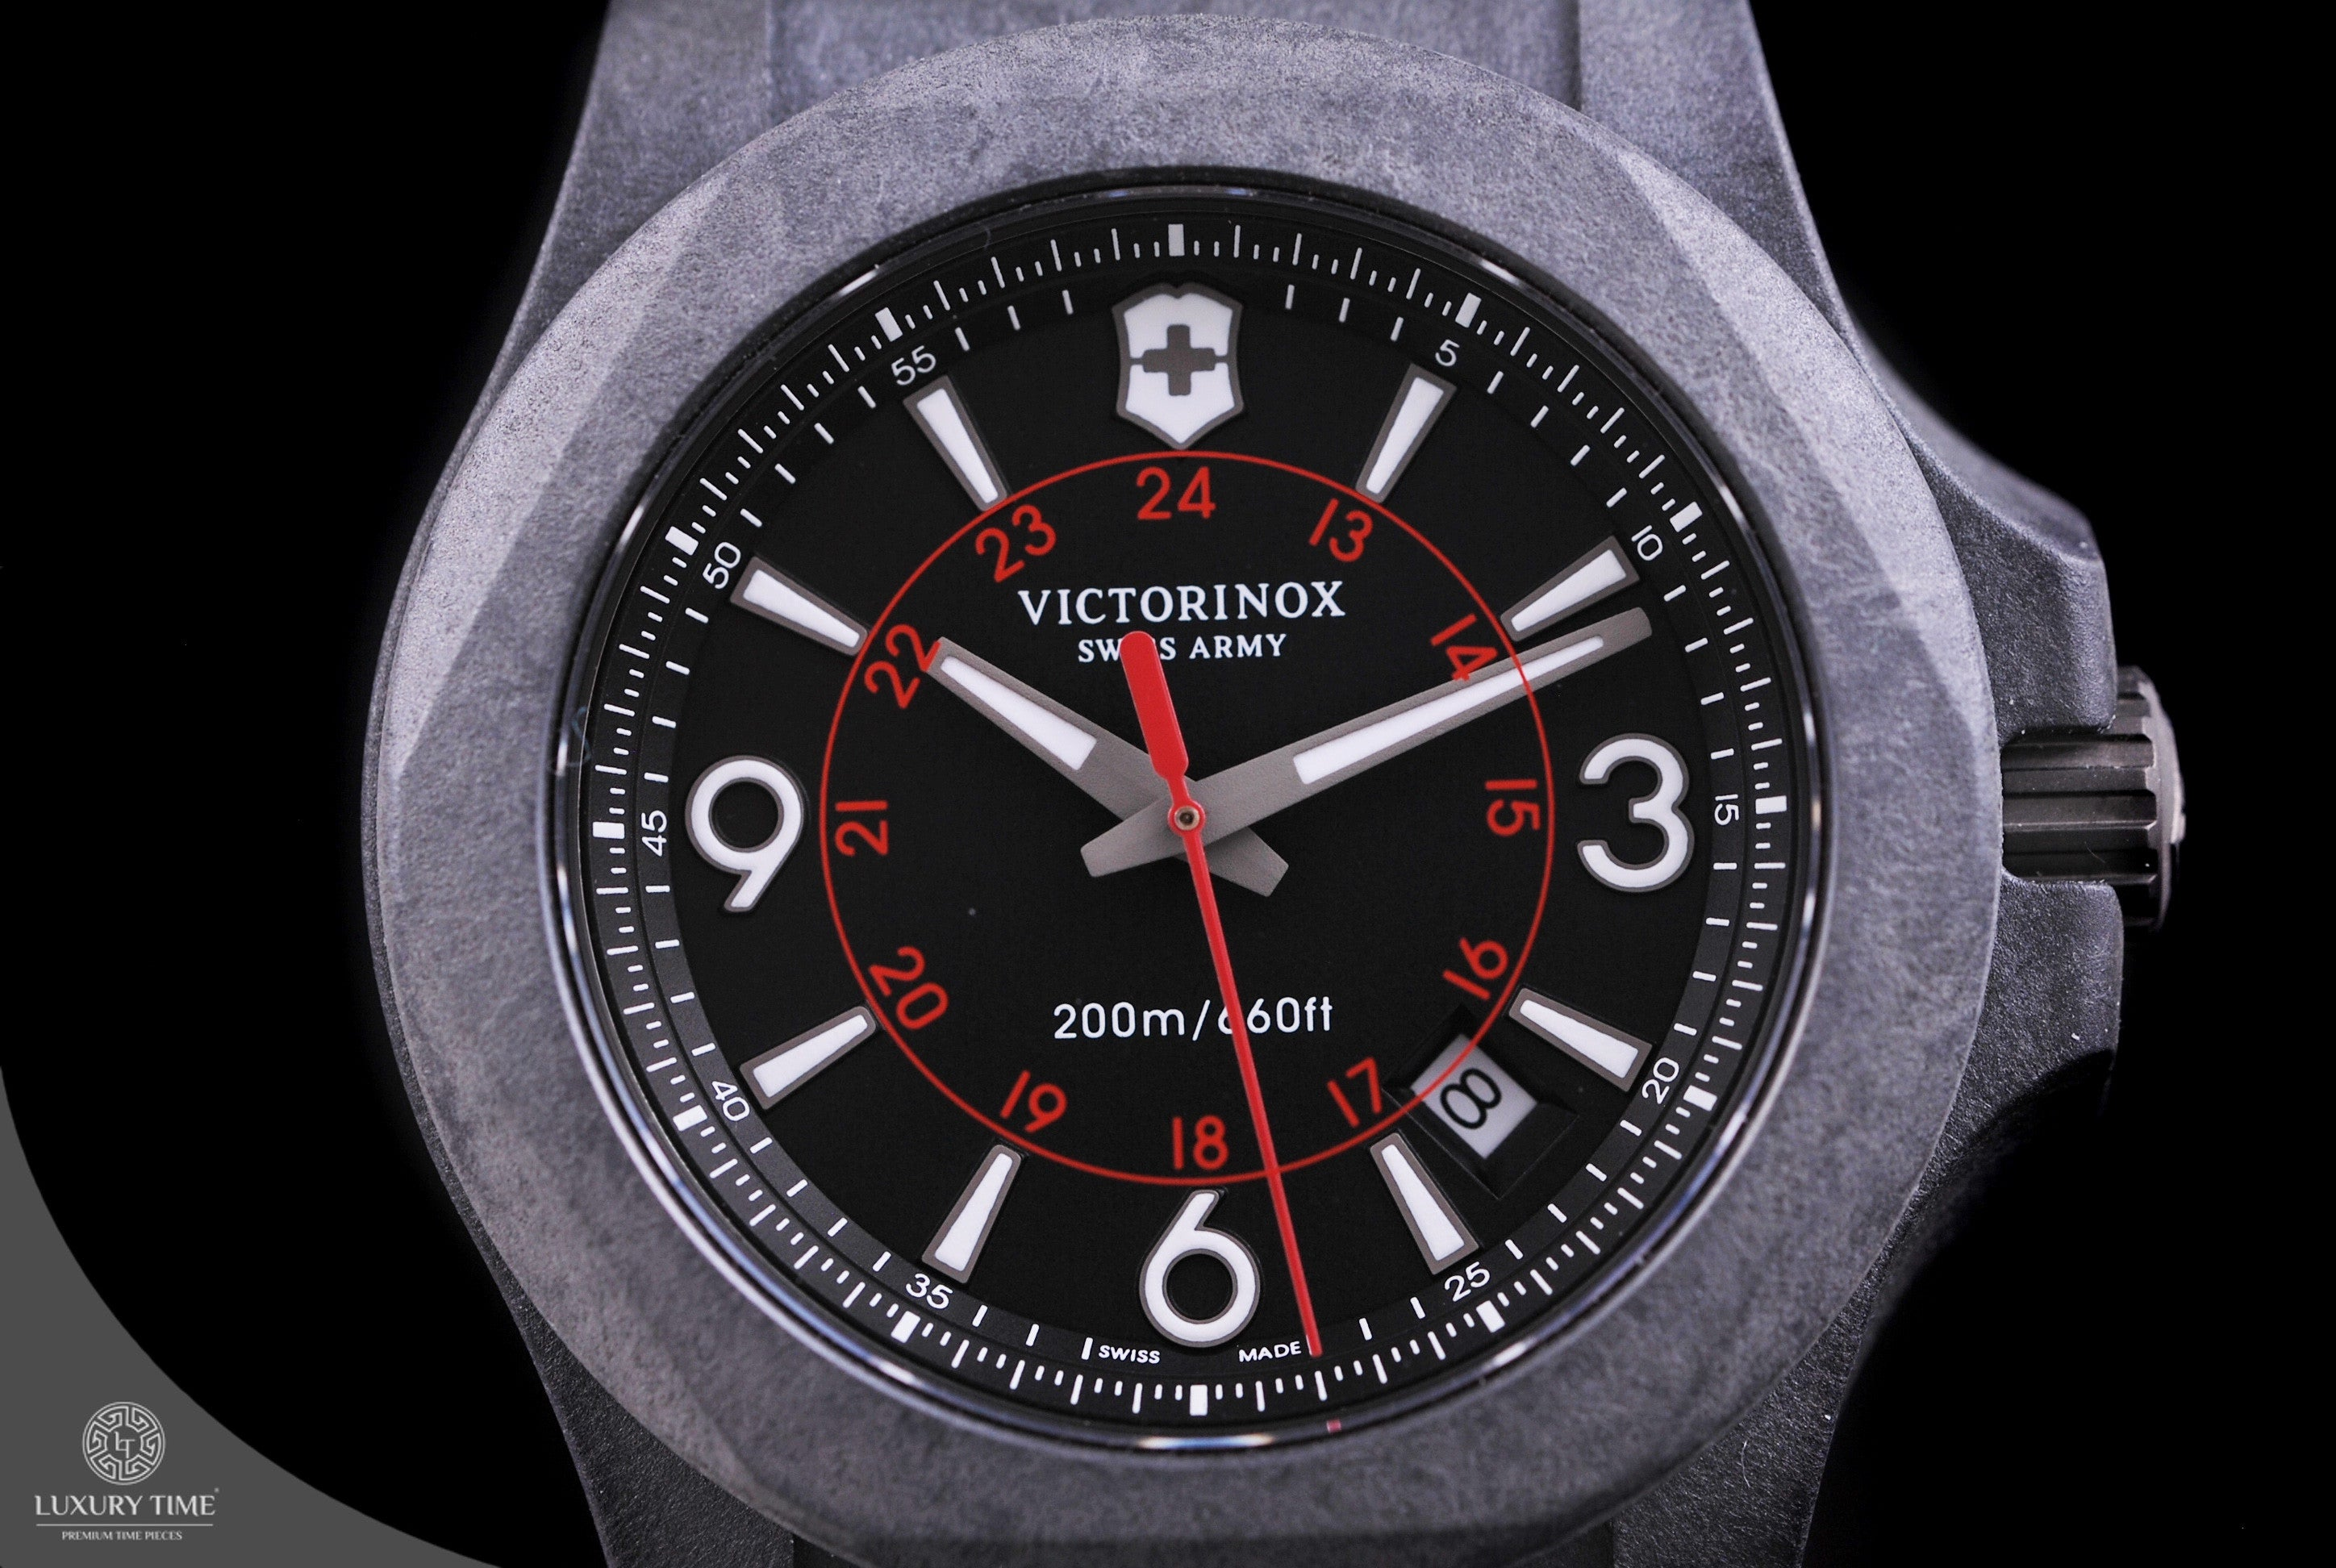 victorinox black inox watchtimesa victor watches carbon watch army products swiss